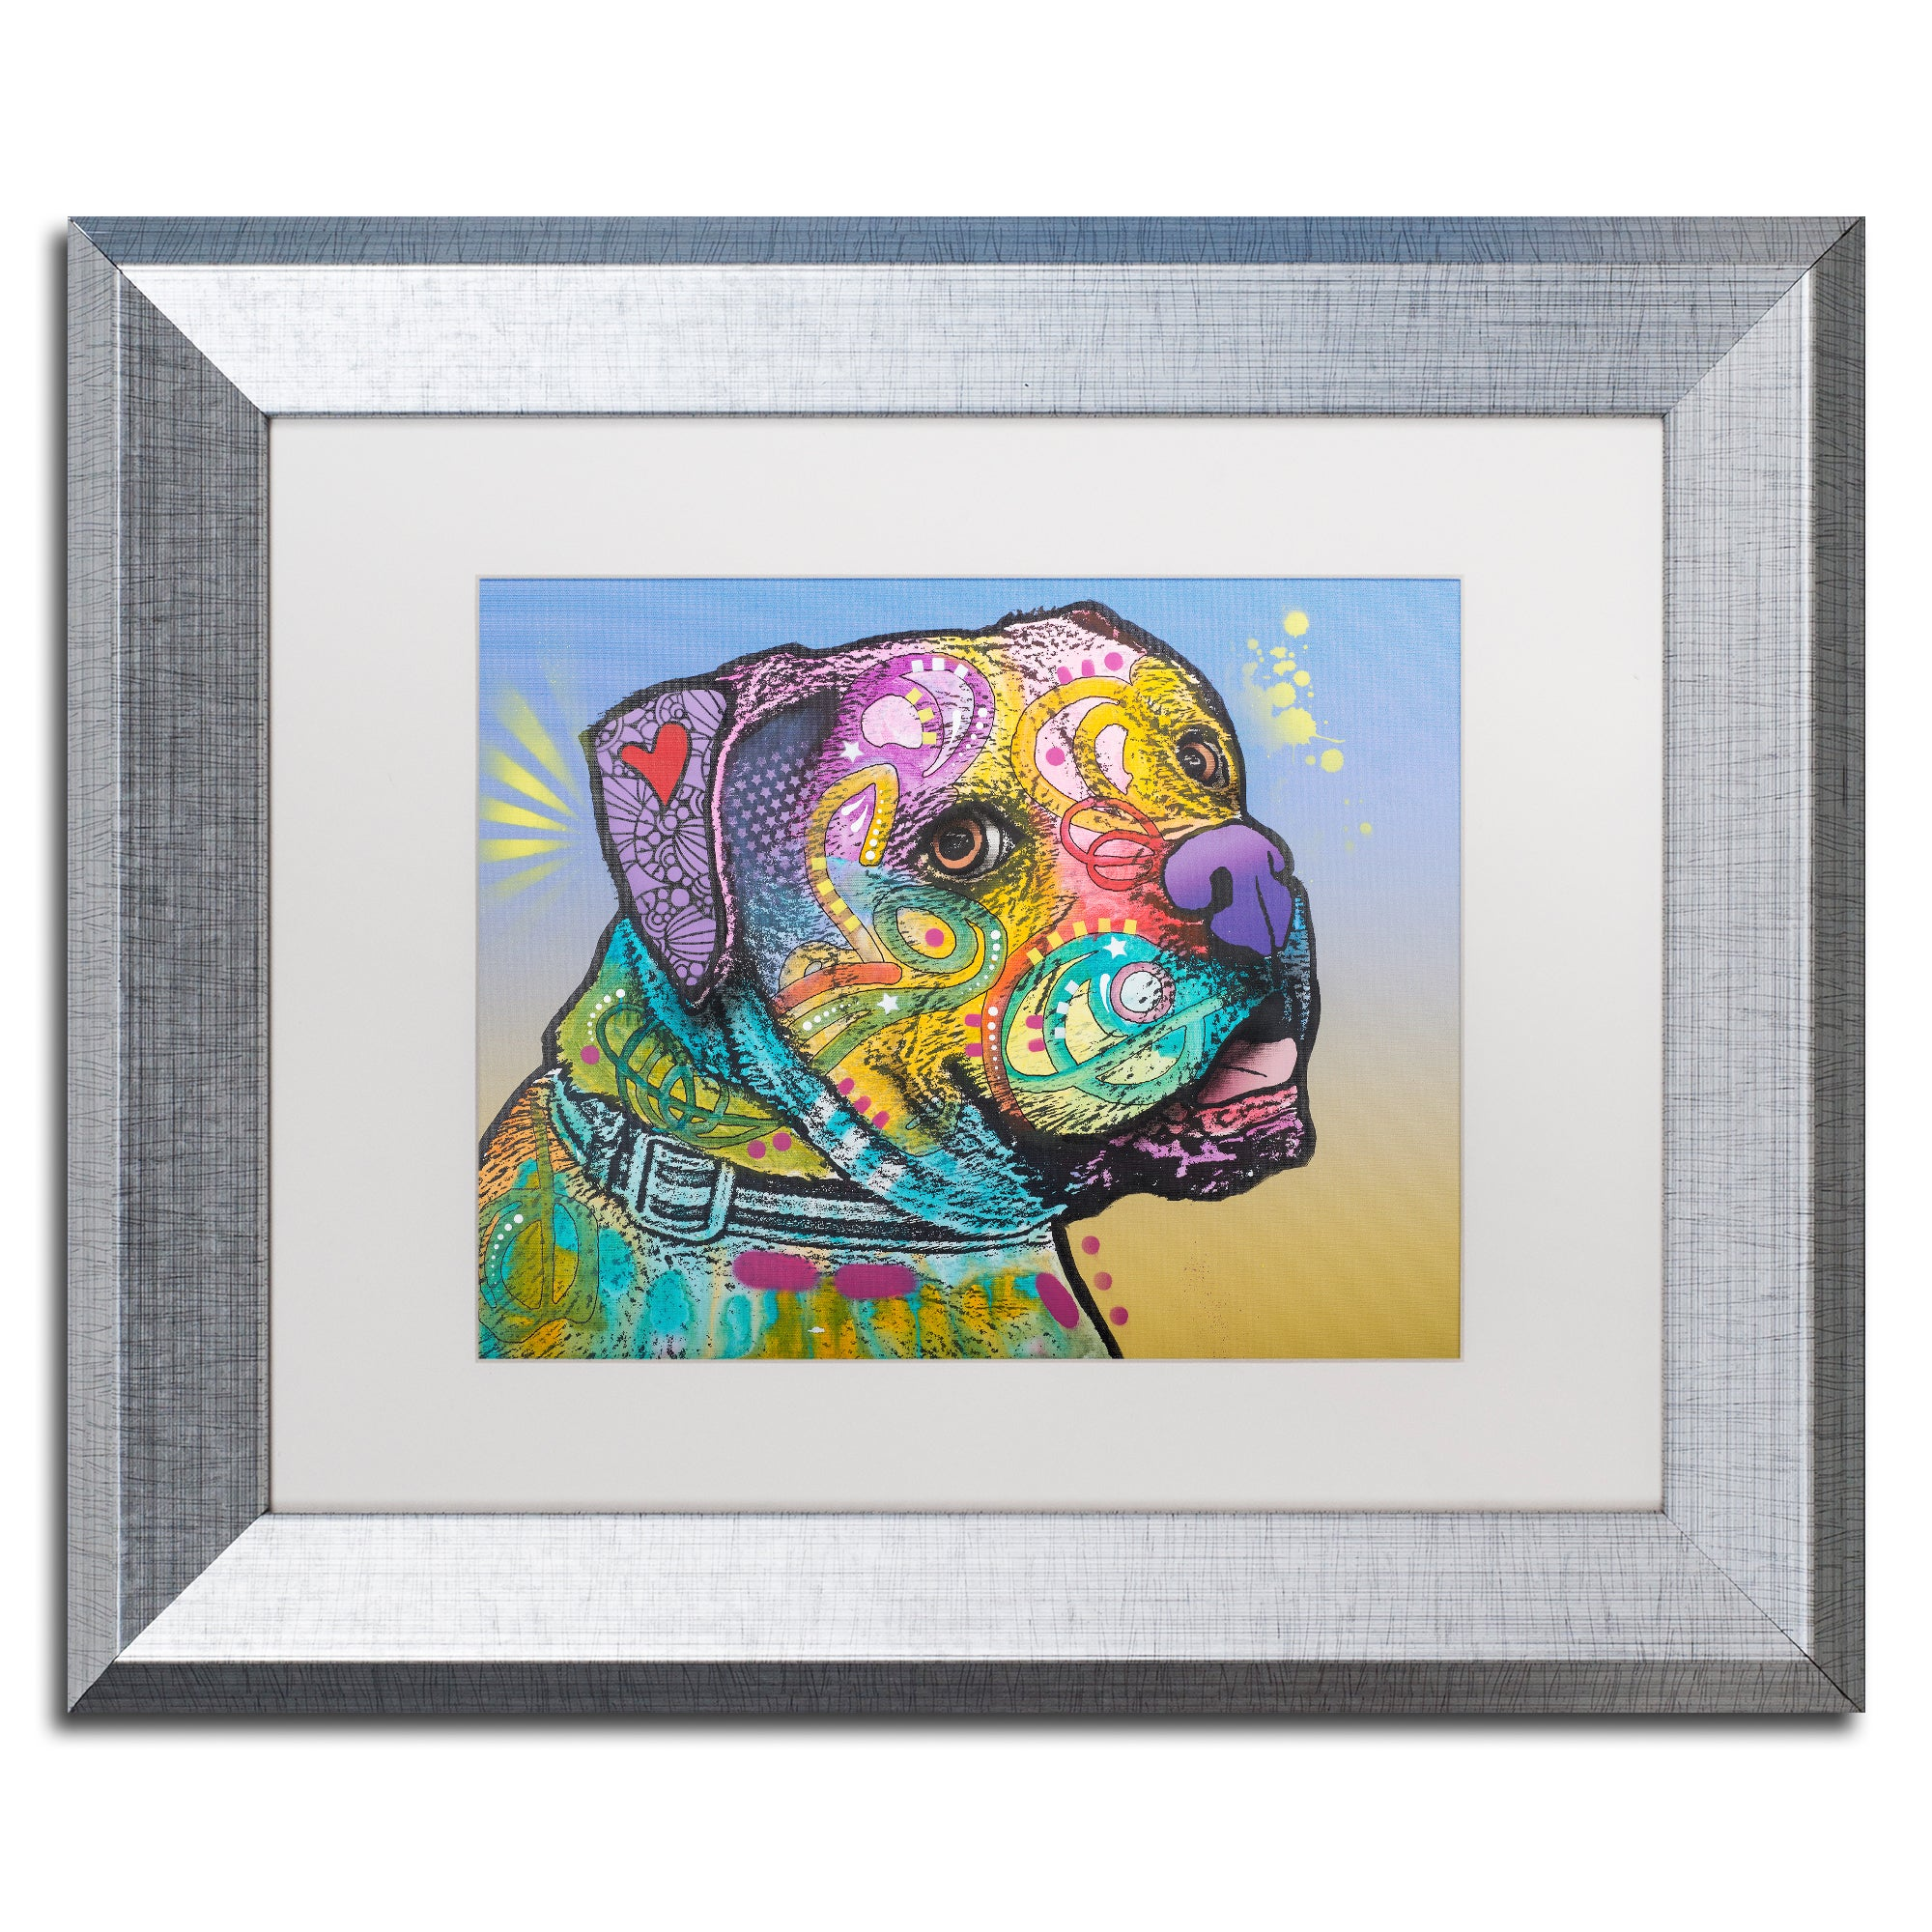 Shop Dean Russo 'Deuce-007' Matted Framed Art - On Sale - Free Shipping  Today - Overstock.com - 15220718